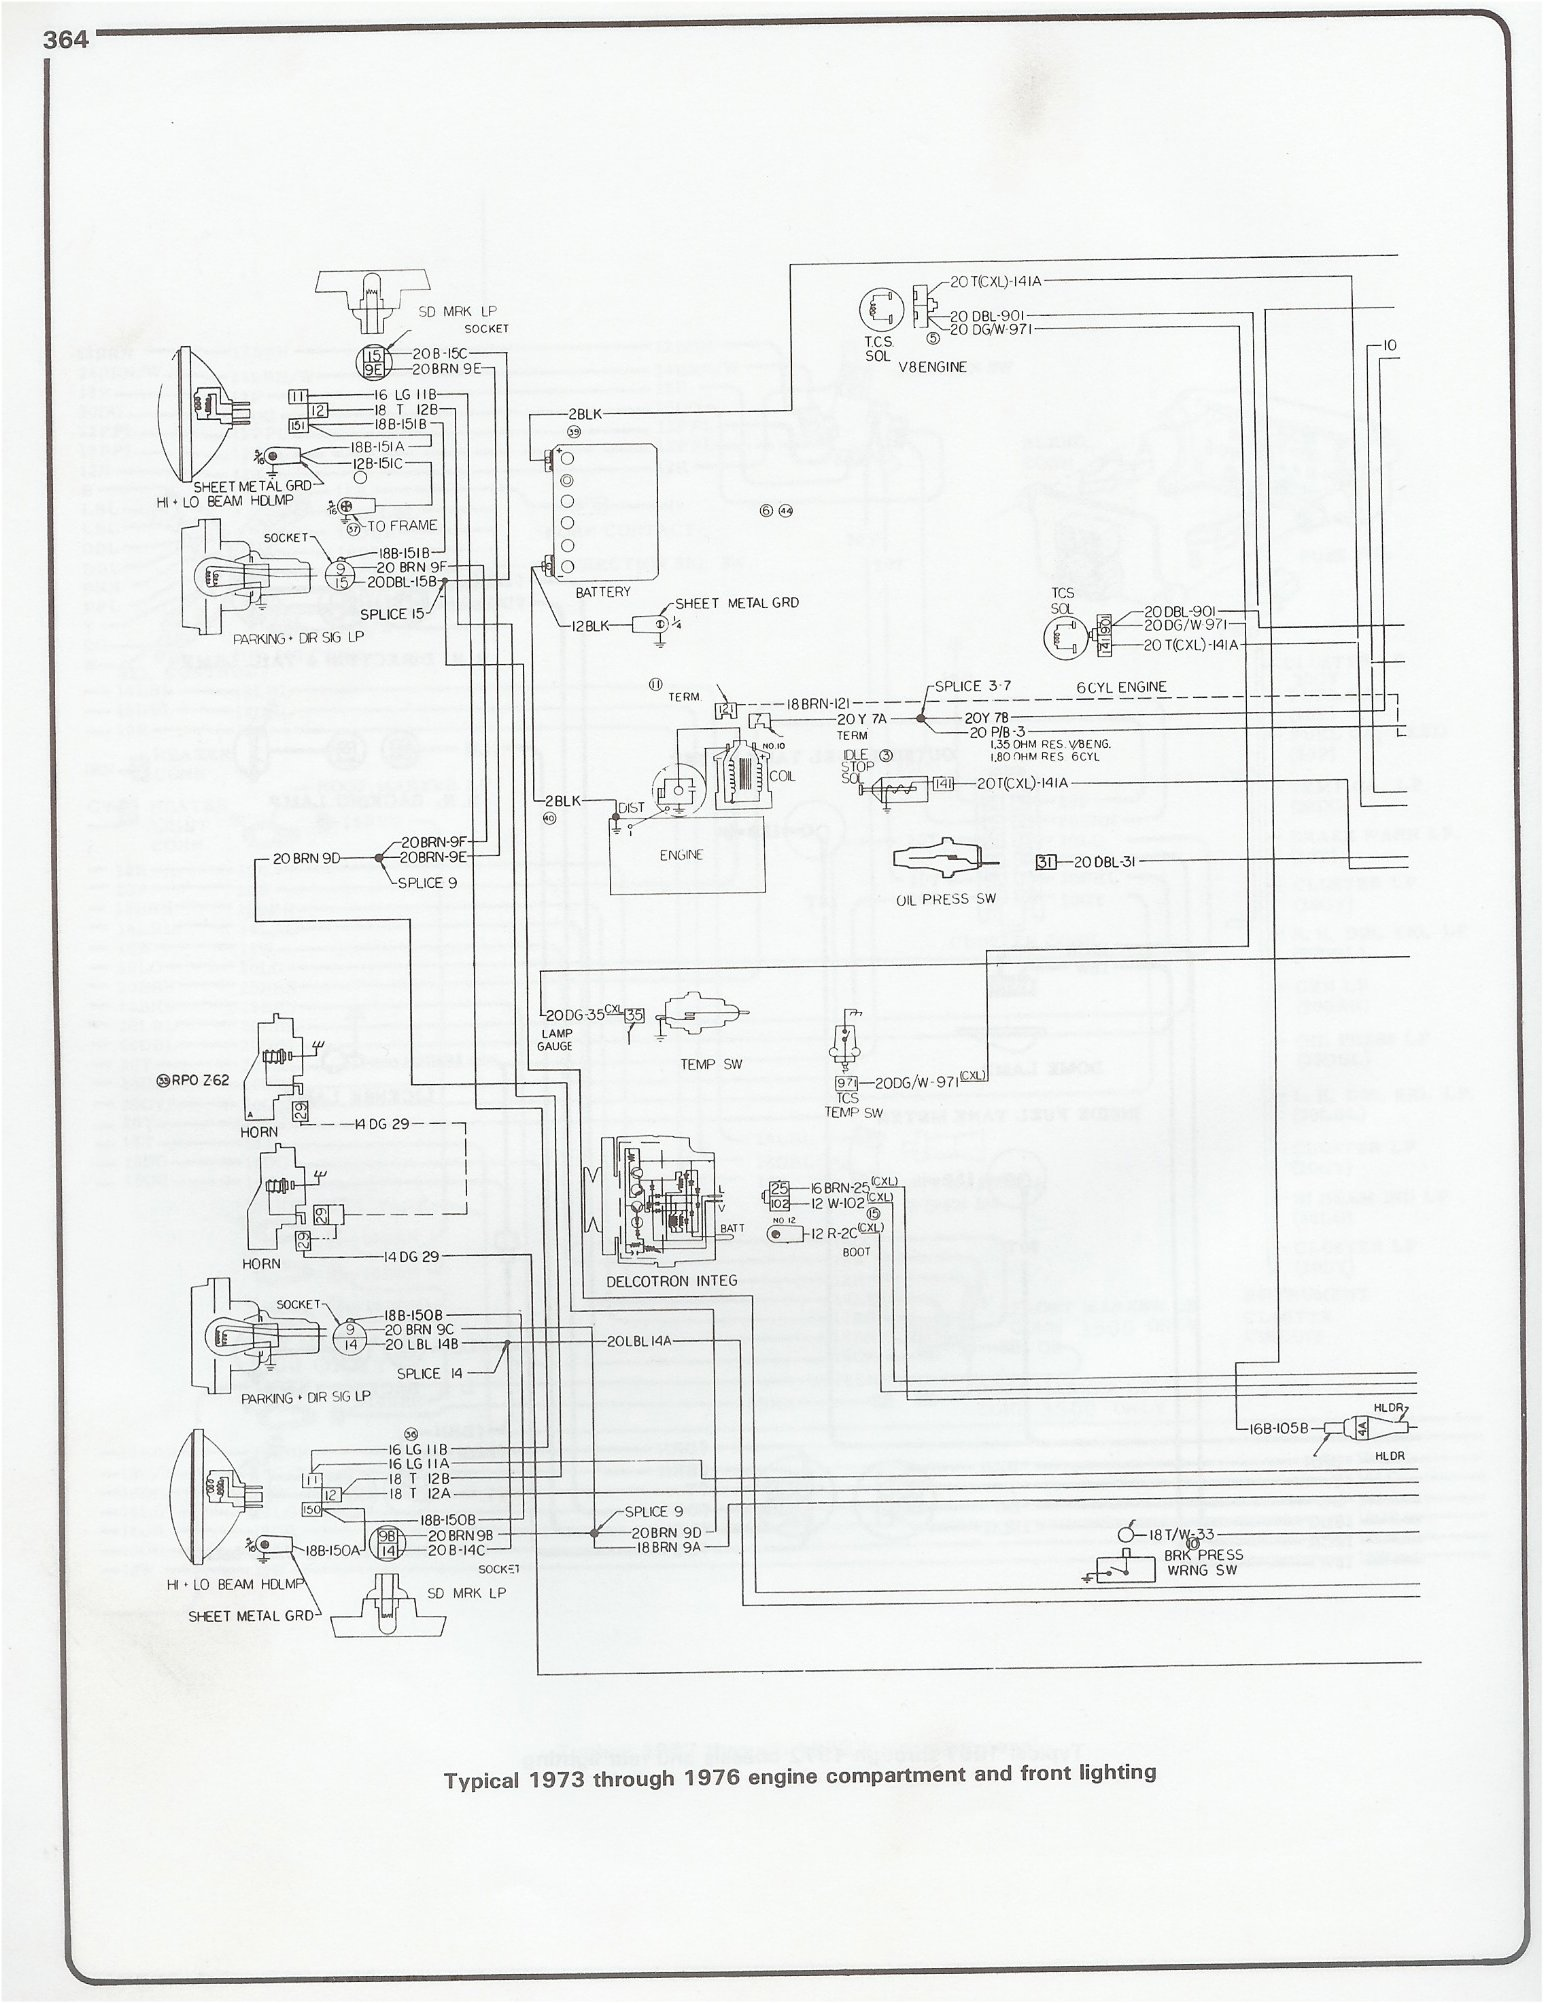 77 Corvette Fuse Box Location Wiring Library Diagram 76 C10 Data Schema 1977 Harness